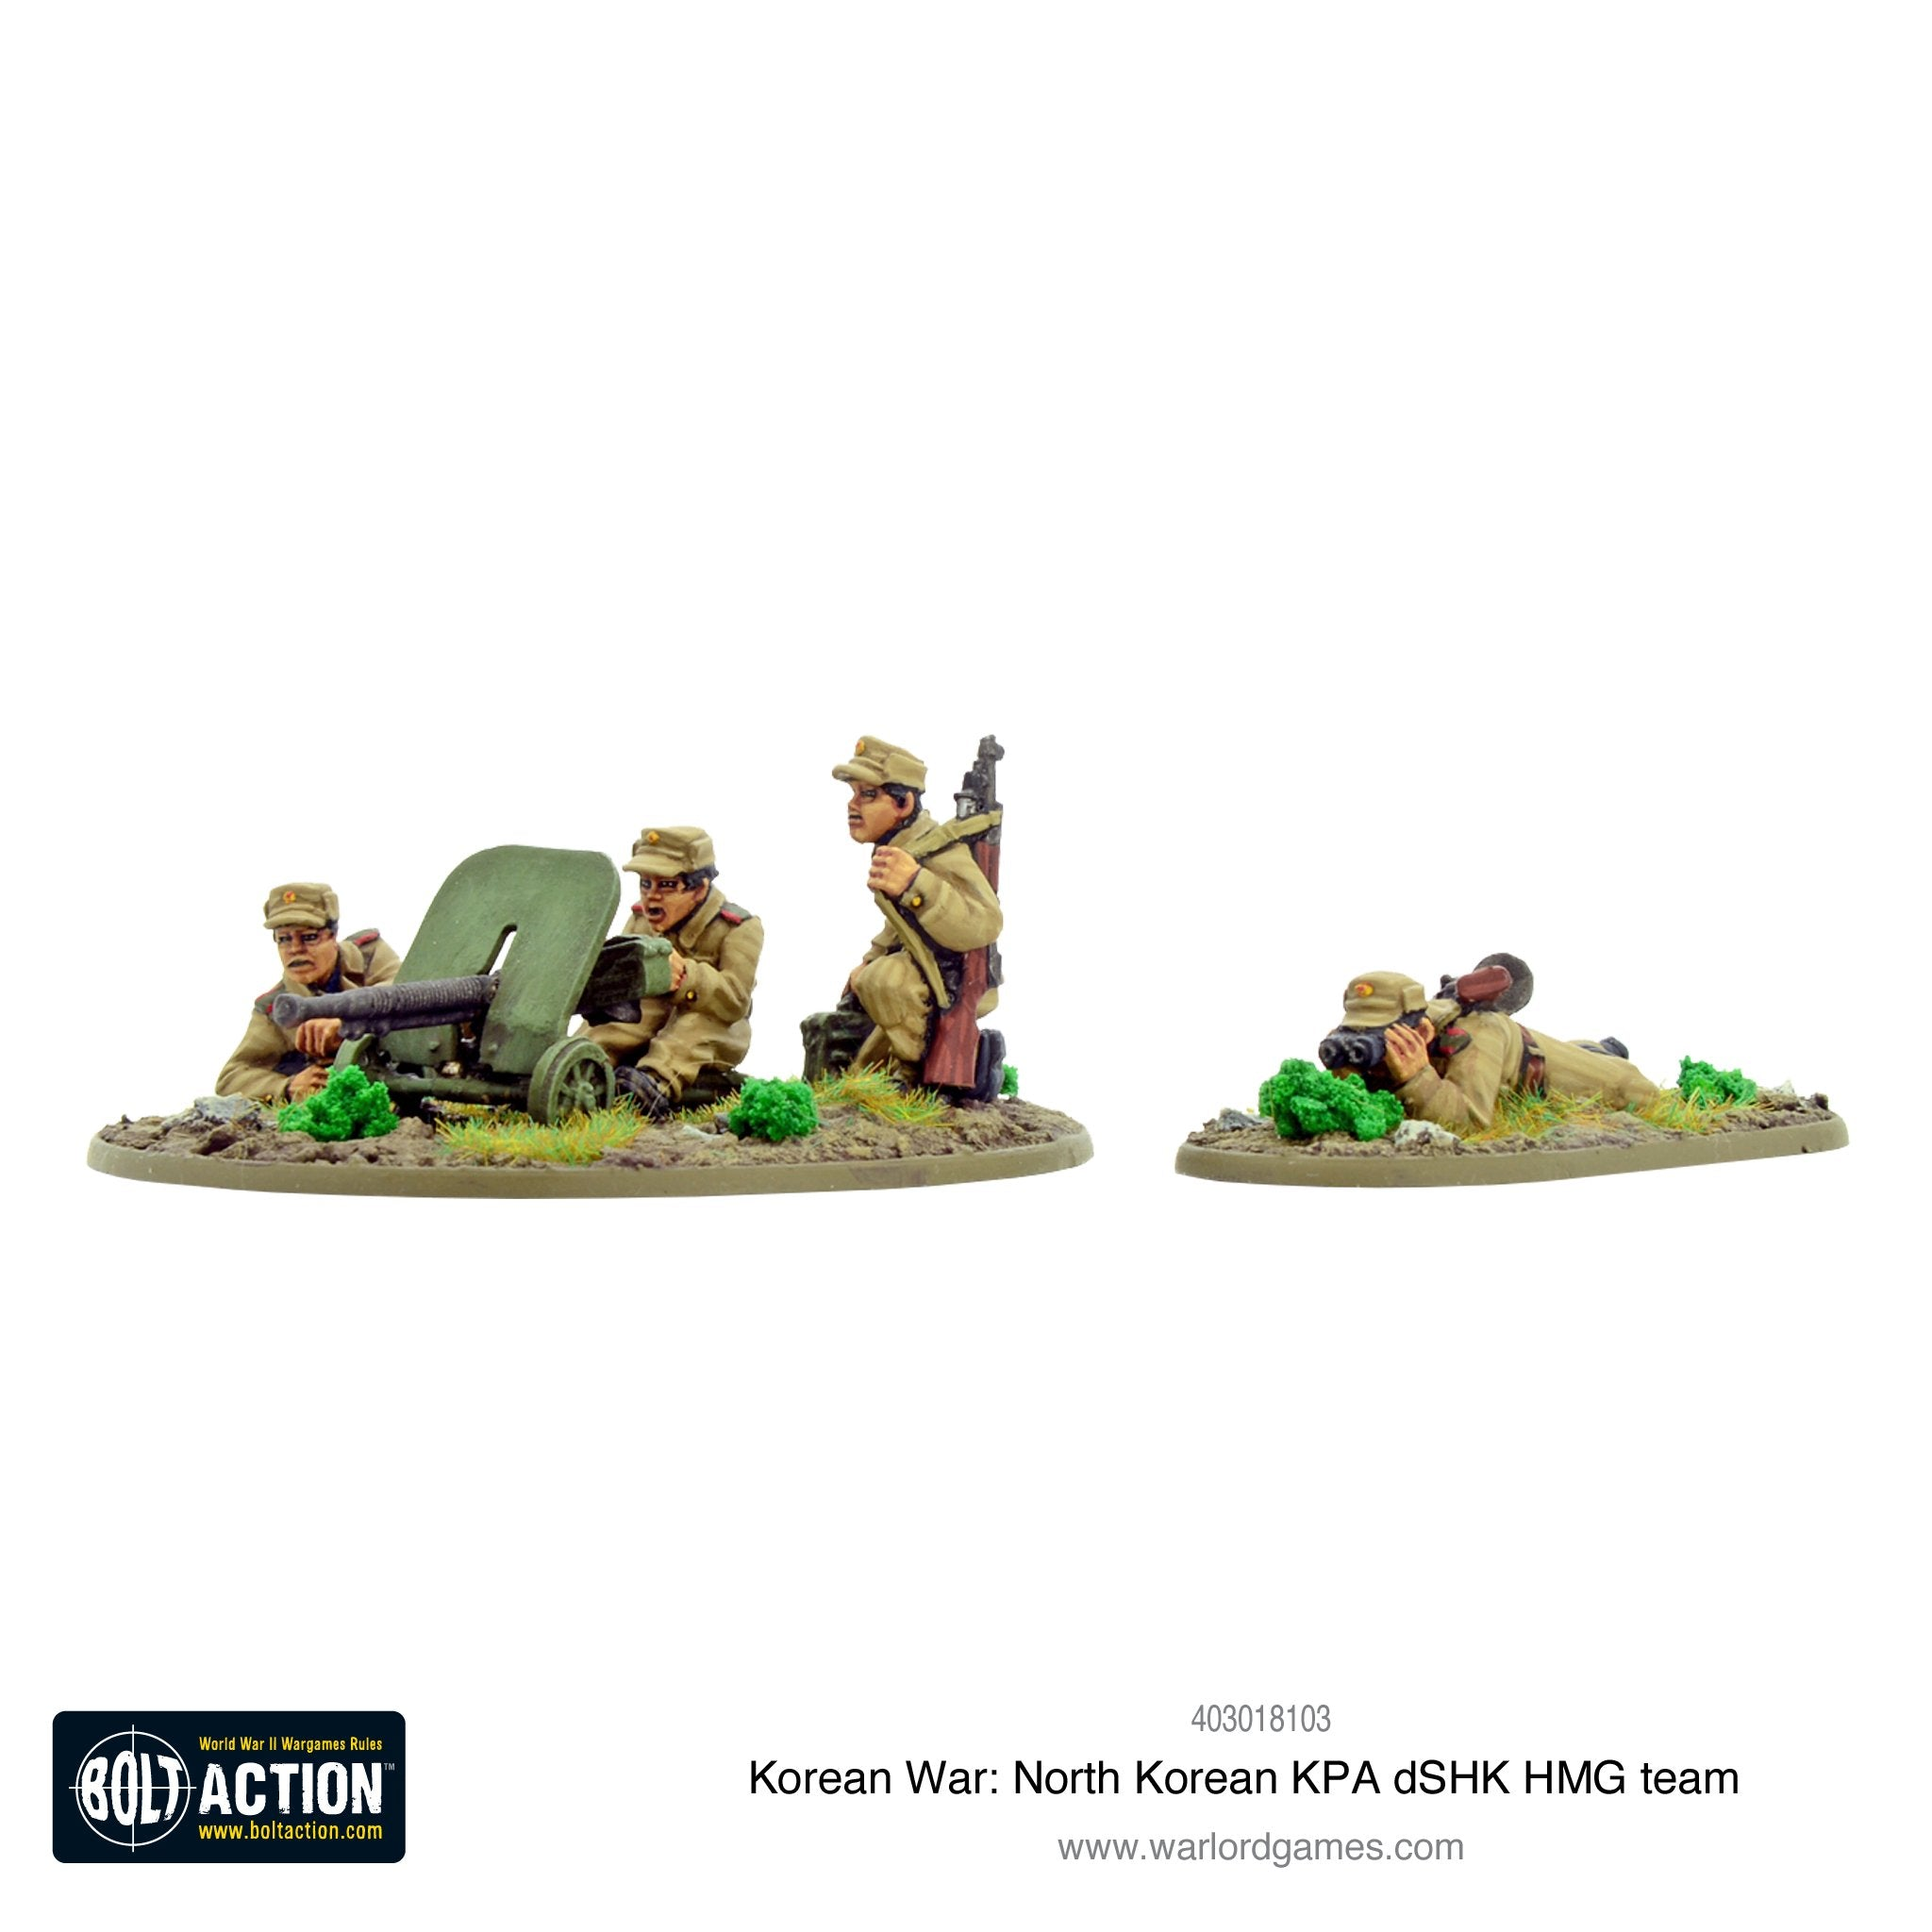 Korean War: North Korean KPA dSHK HMG team